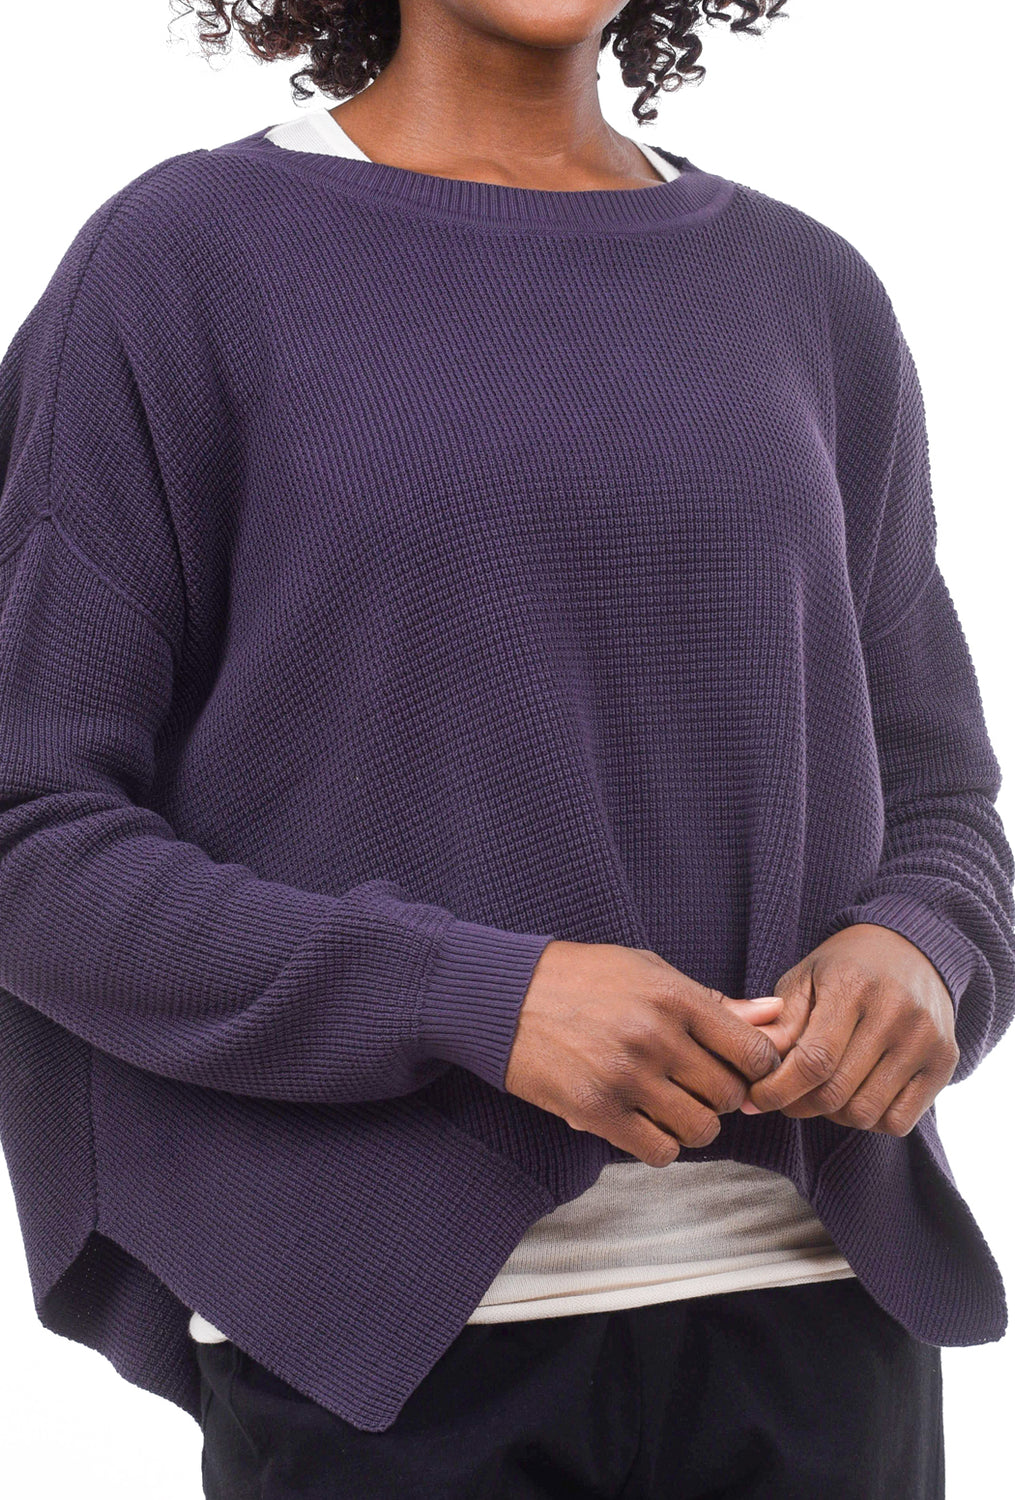 Planet Thermal Crew Sweater, Plum One Size Plum